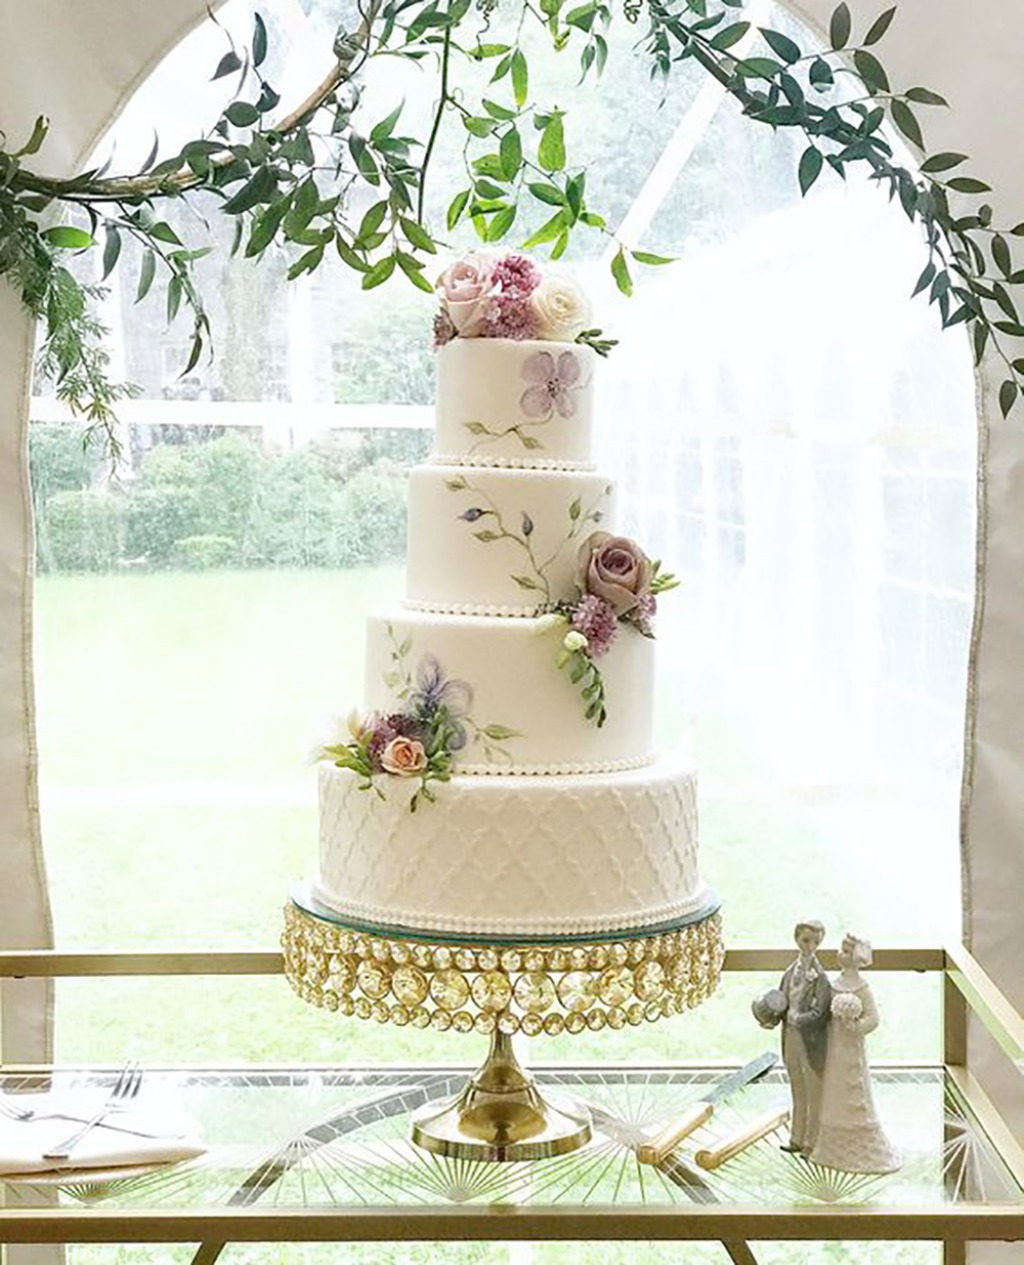 Royal Wedding at @linwoodestate. wedding cake by @thecouturecakery included hand painted flowers on Shiny Gold Bling Cake Stand created